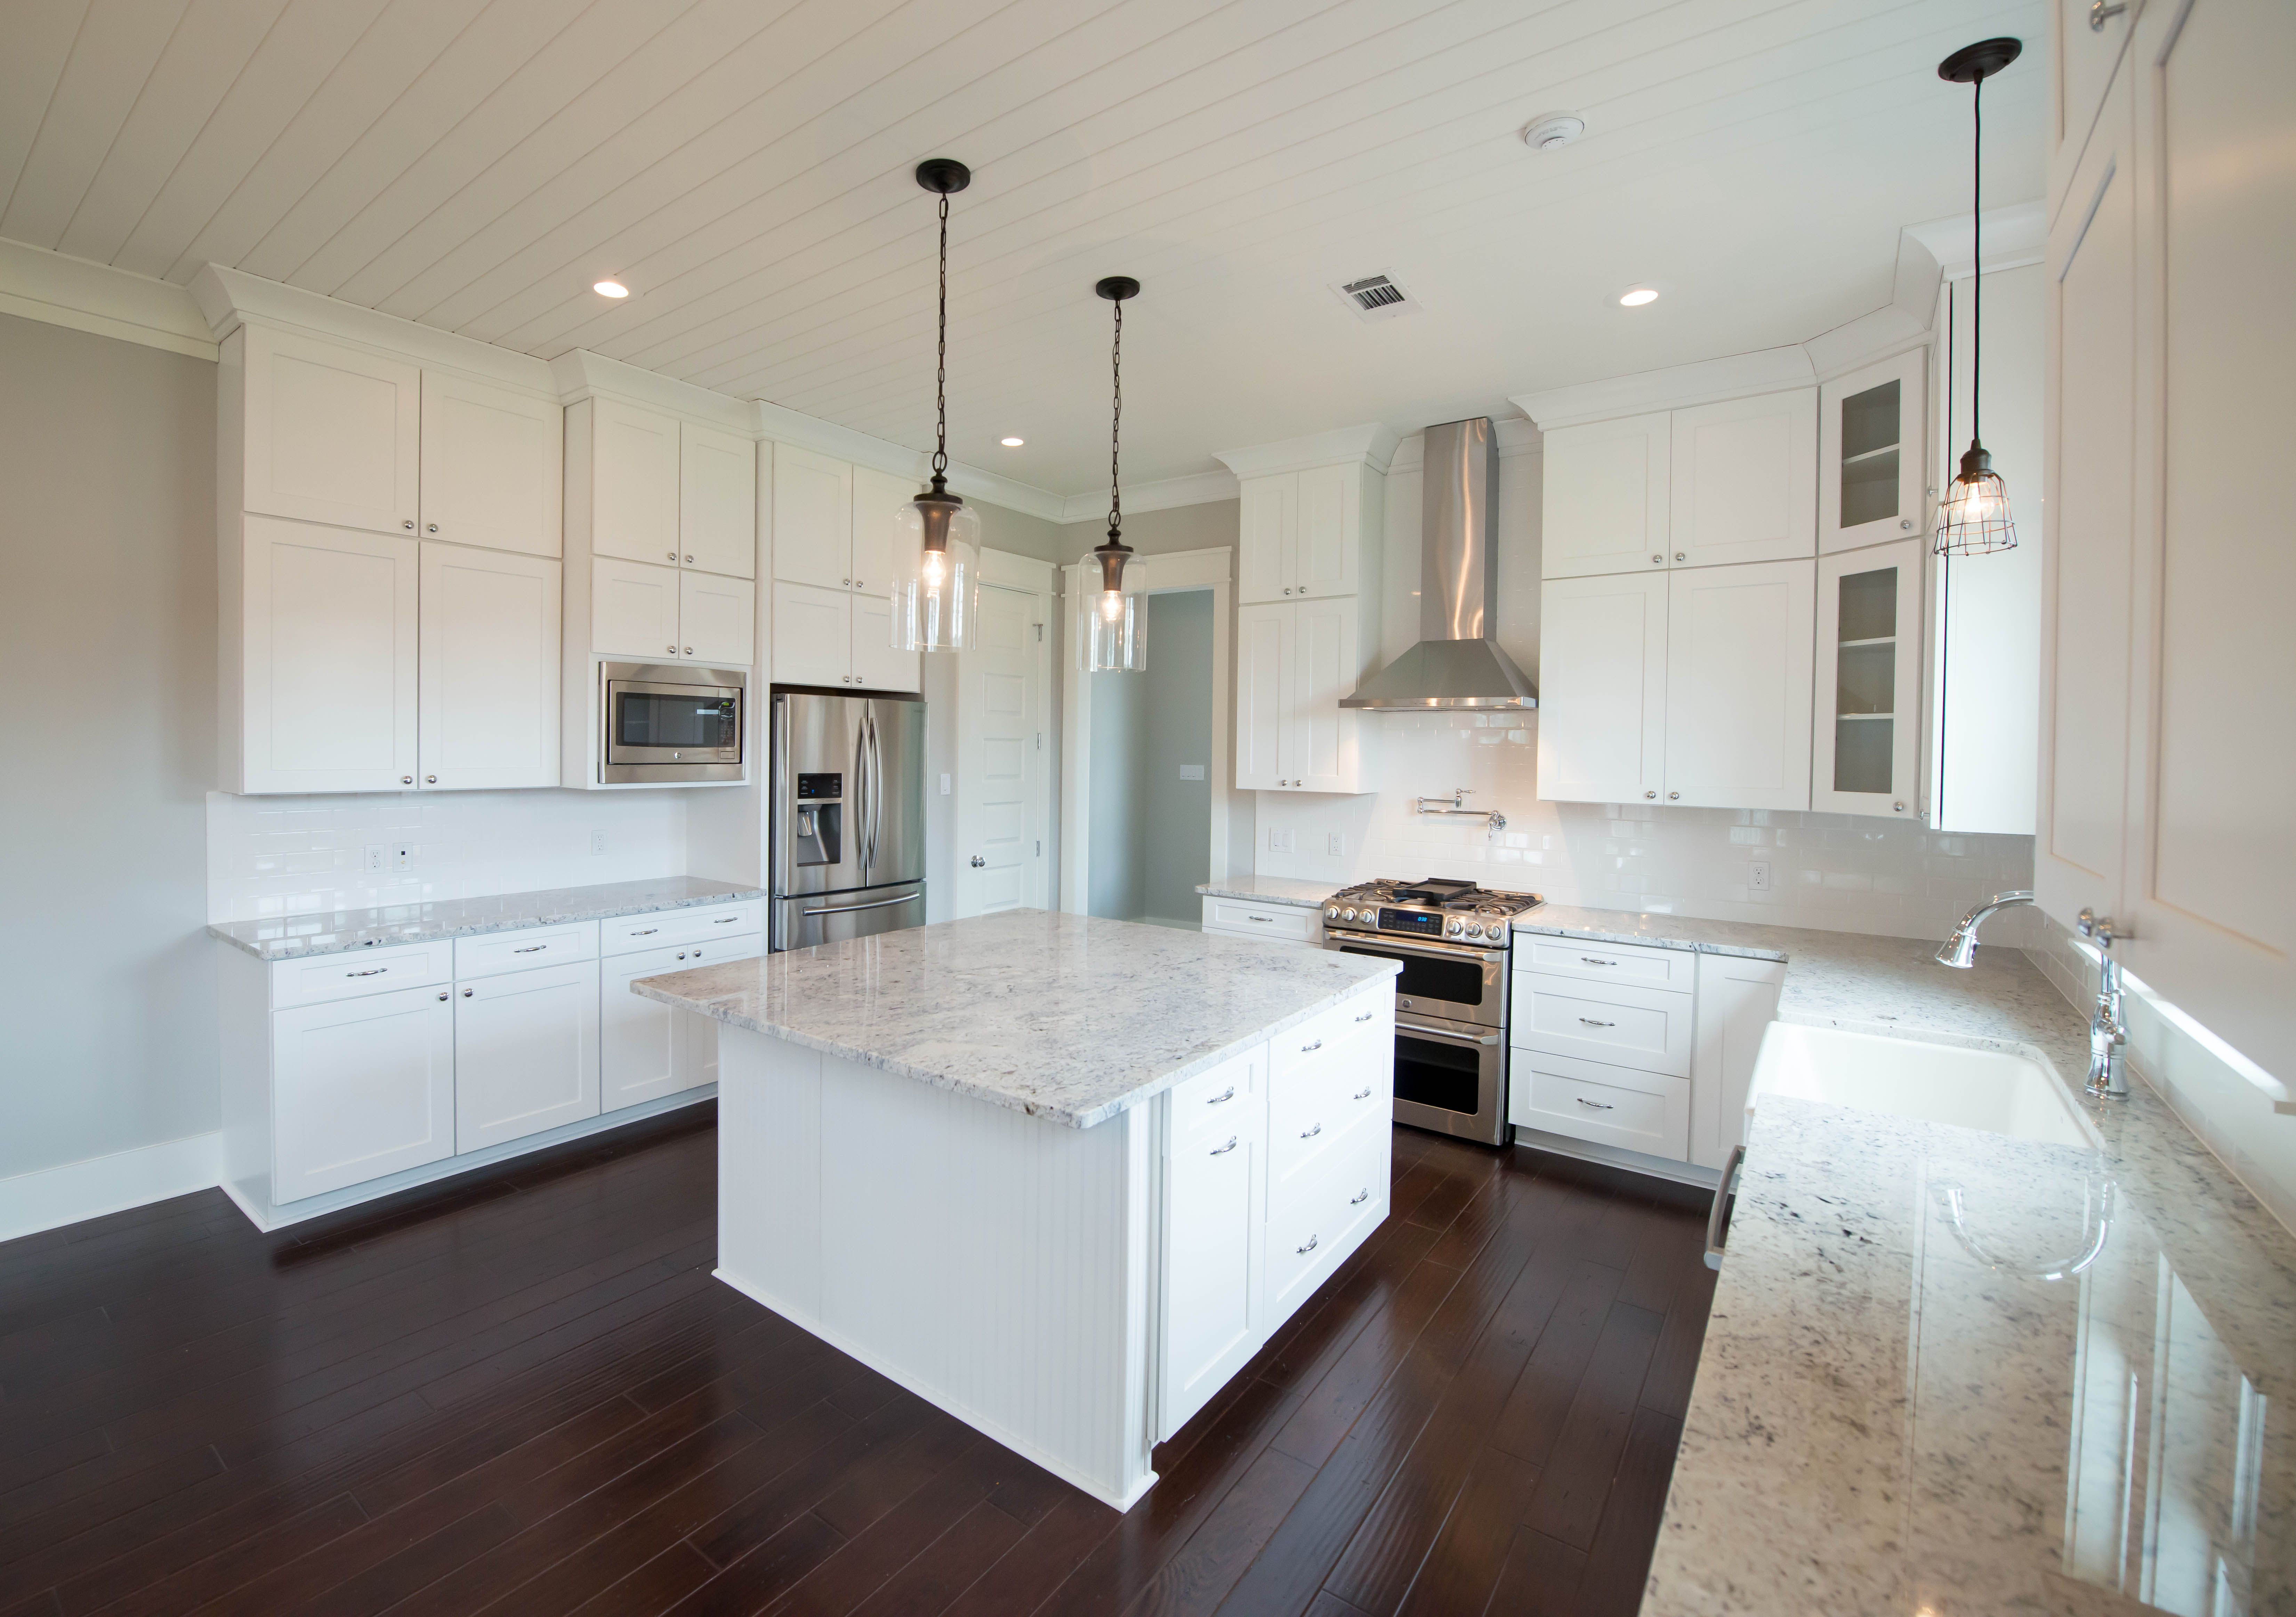 Cottage Kitchen With Tongue And Groove